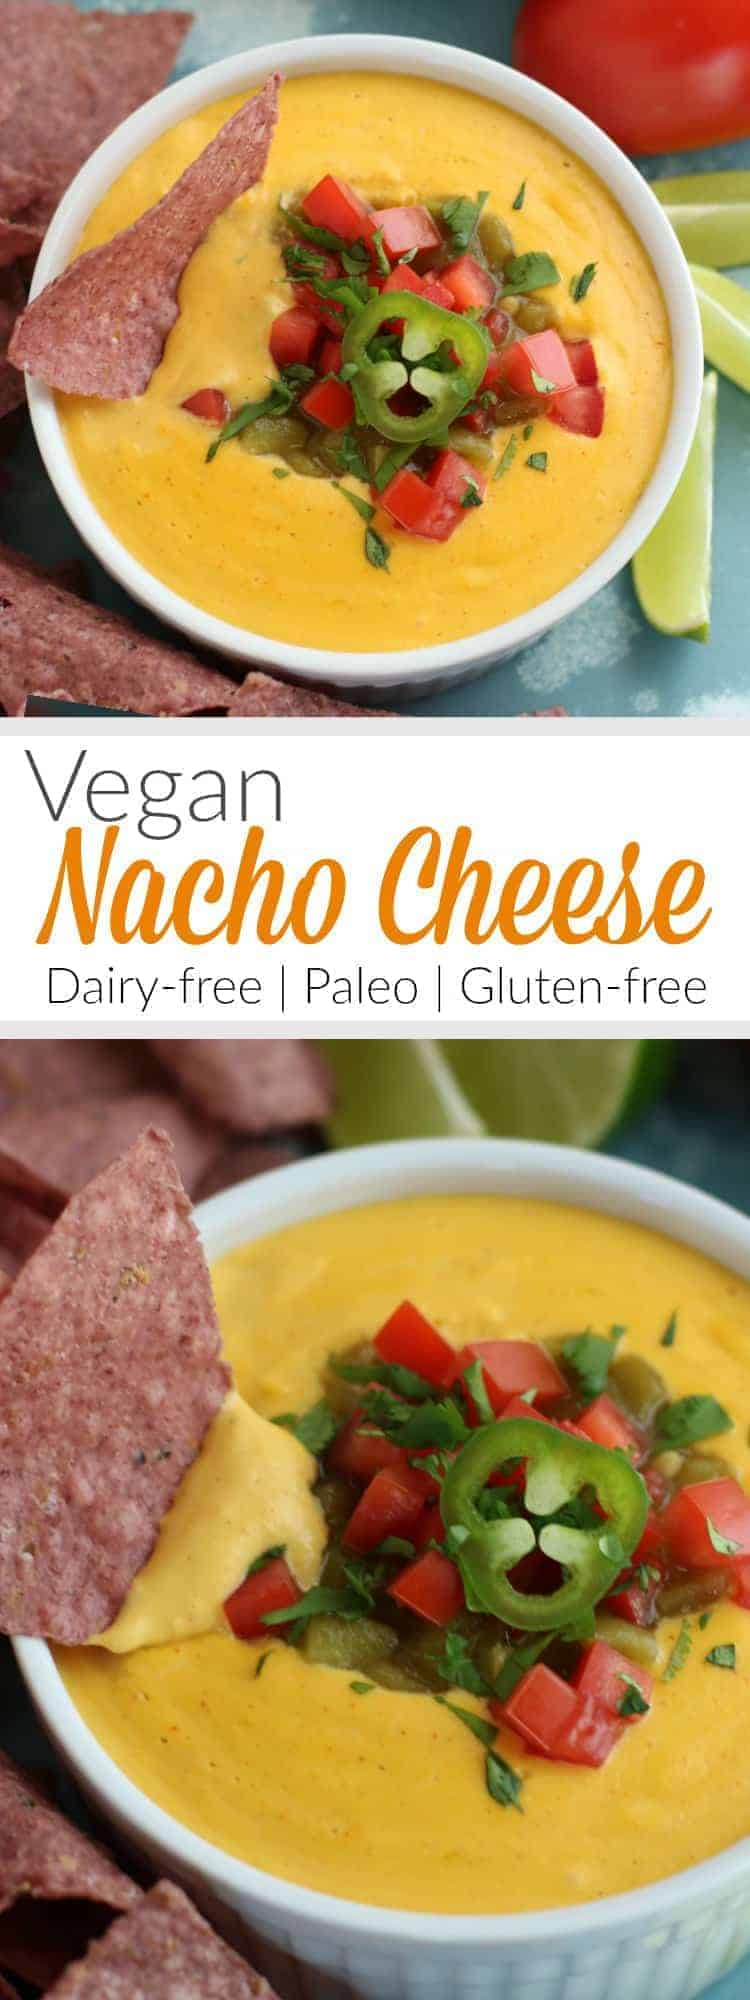 Pinterest image for Vegan Nacho Cheese